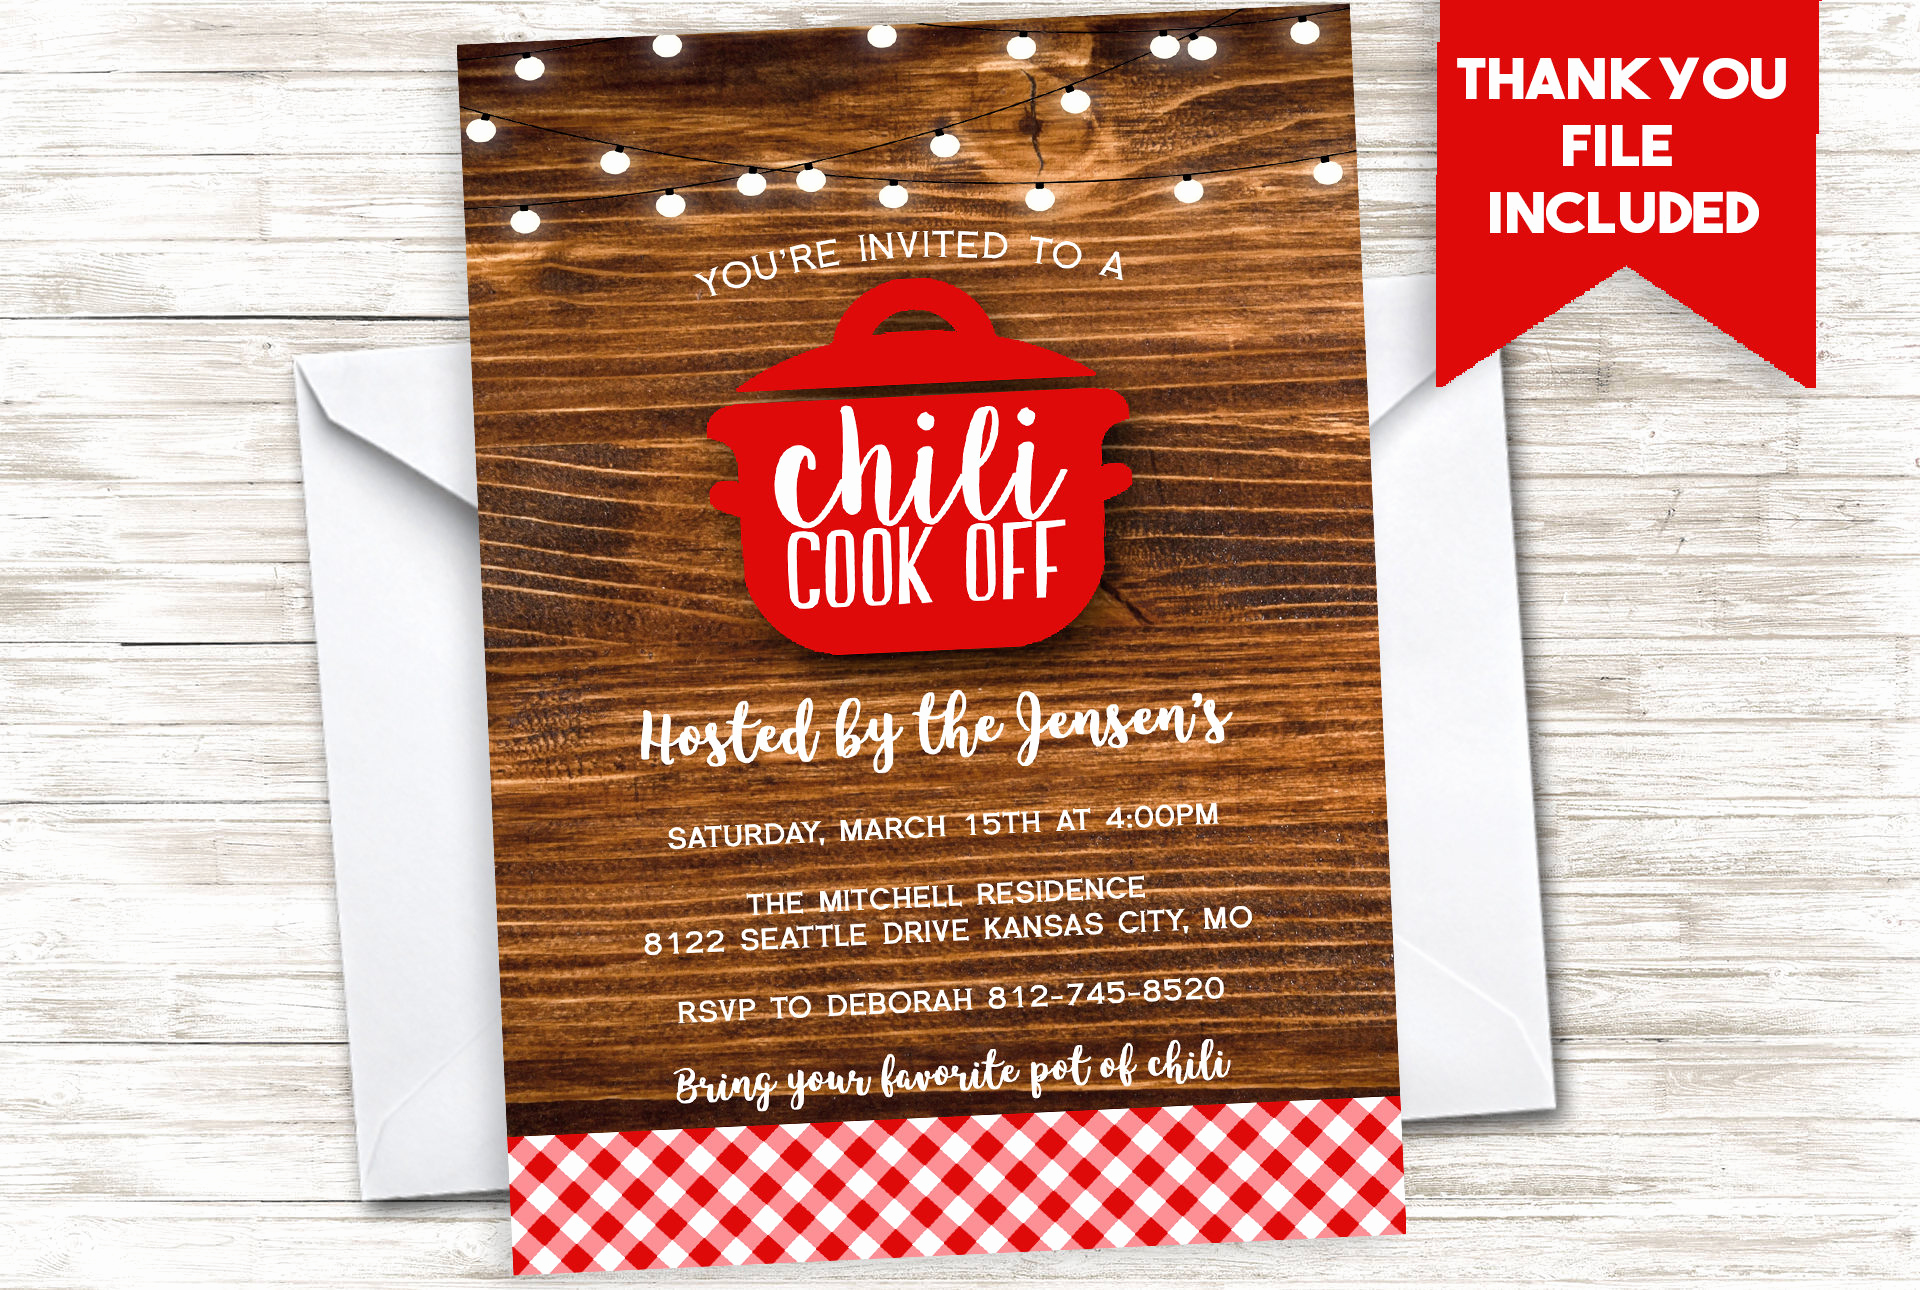 Chili Cook Off Invitation Lovely Chili Cook F Invitation Announcement You are Invited